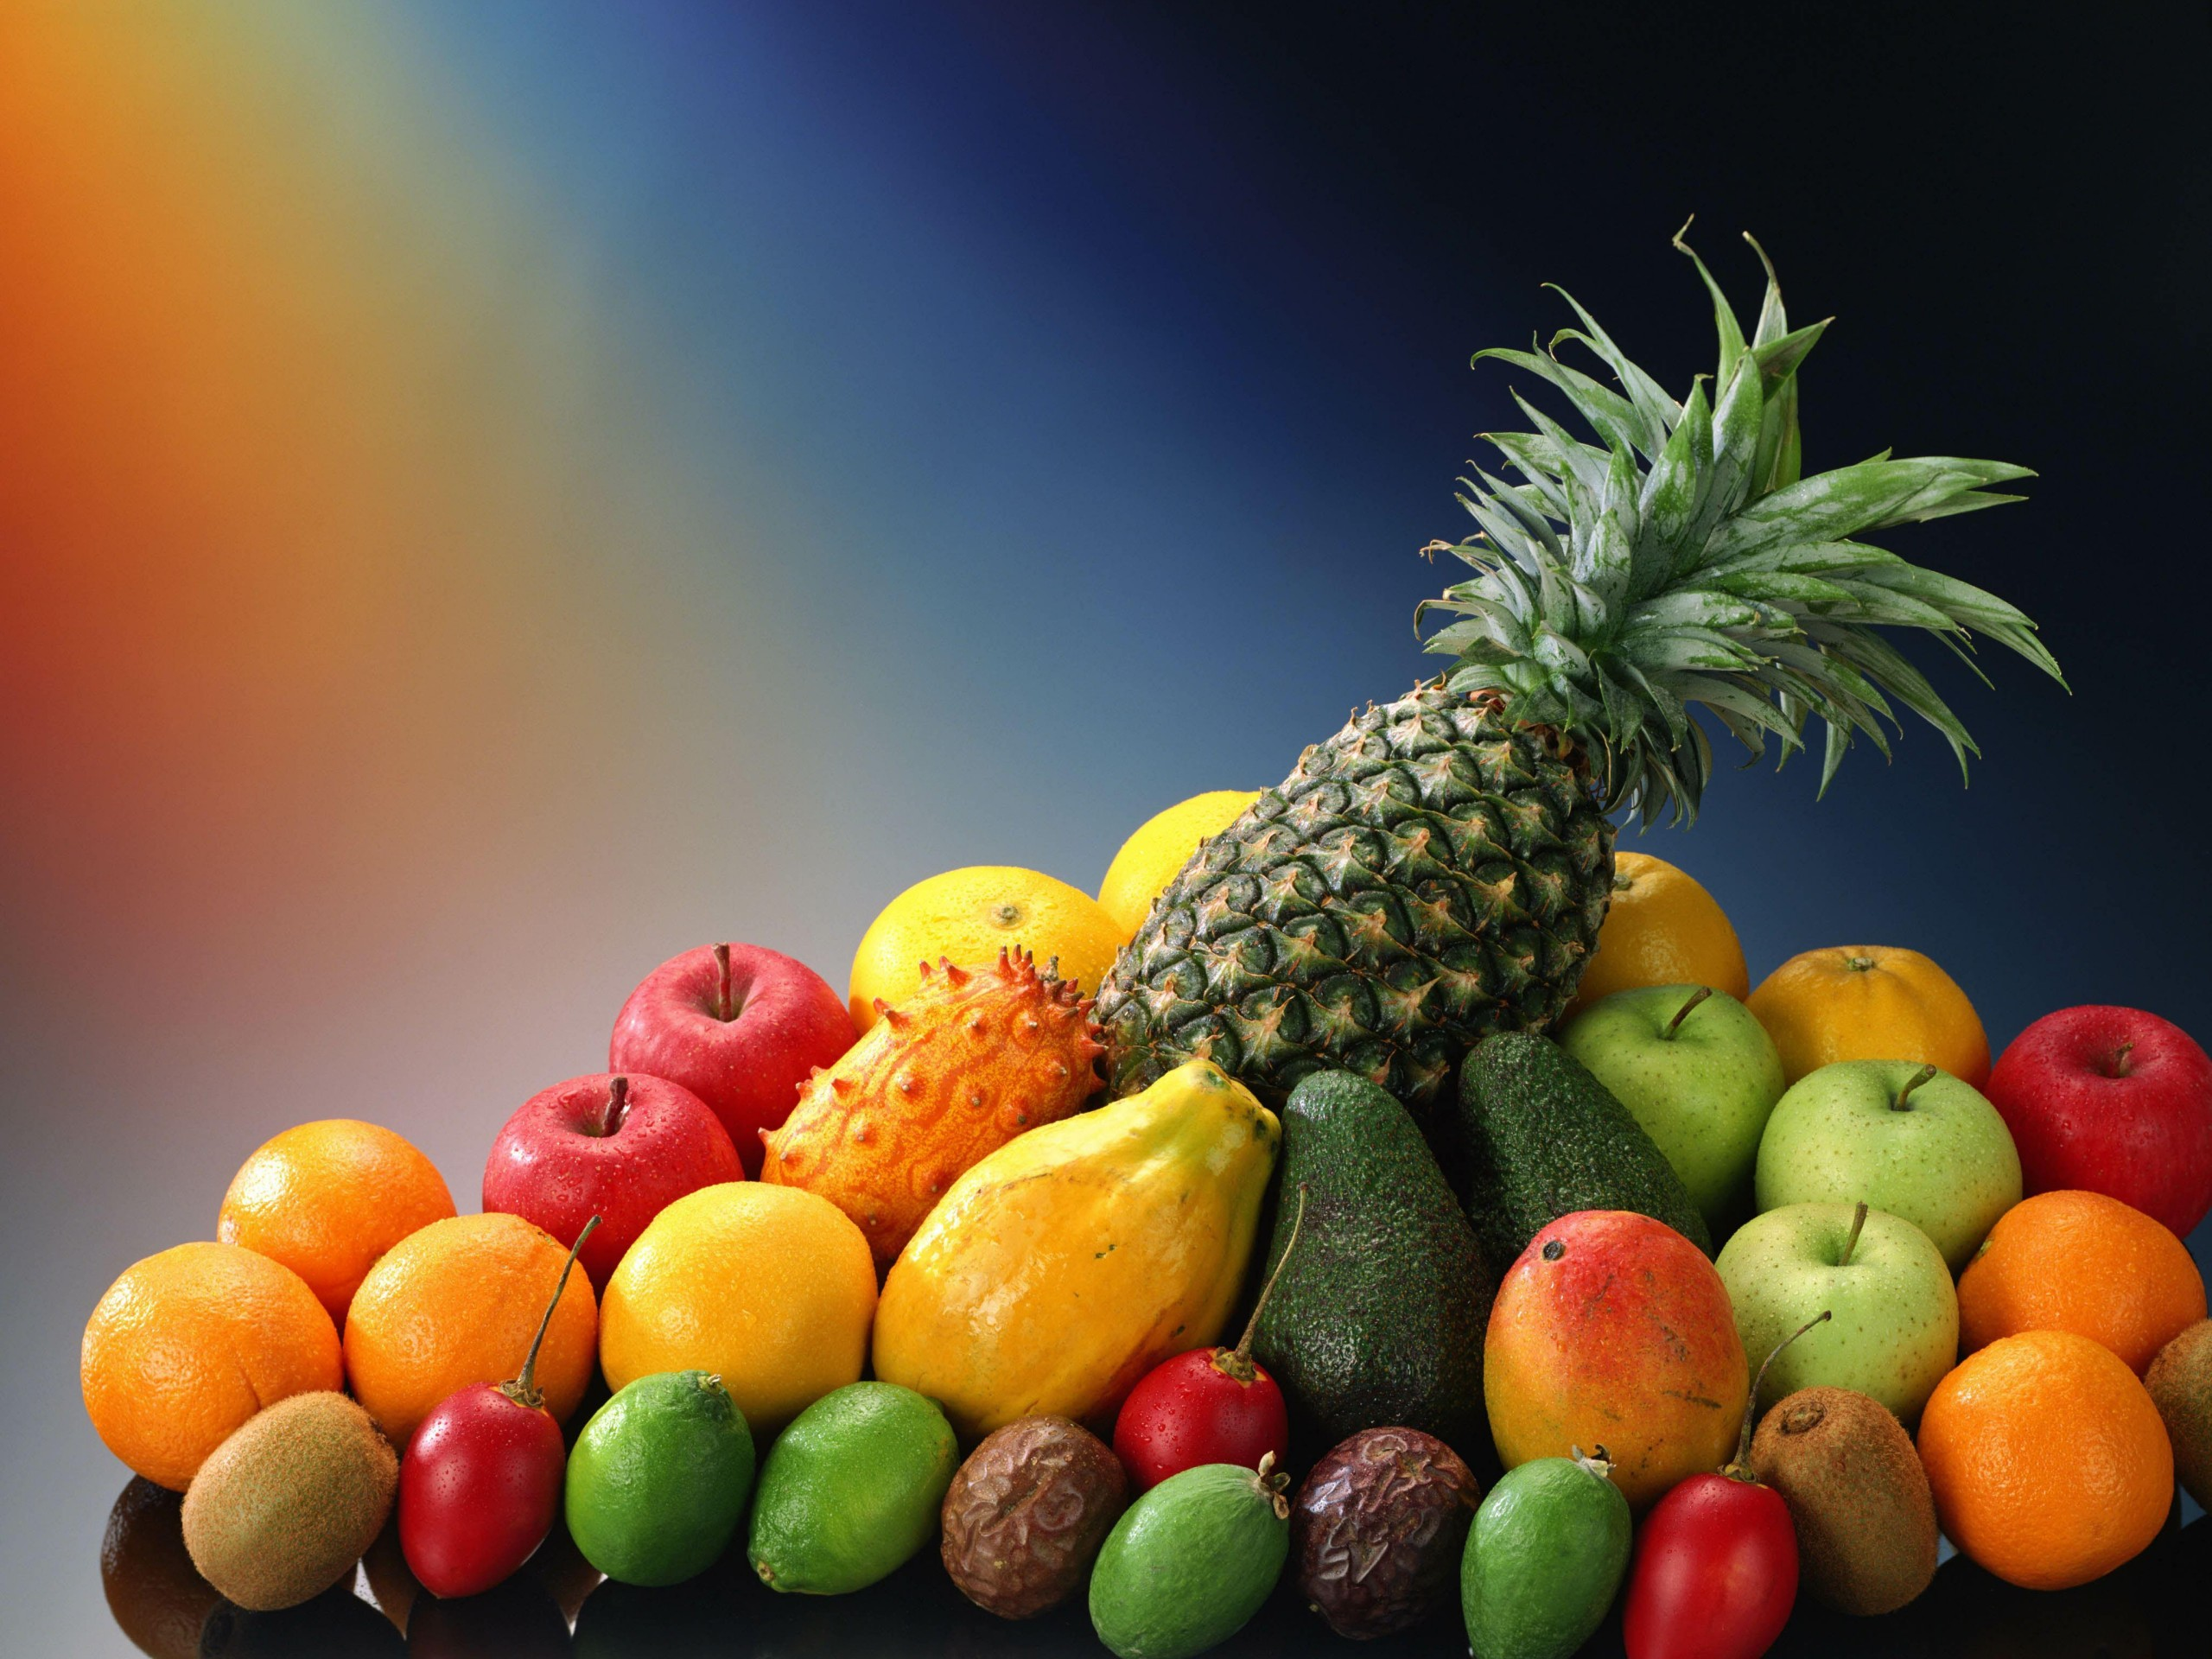 Great Wallpaper Mac Pineapple - colorful-fruit-mix_wallpapers_28335_2560x1920  Trends_715037.jpg